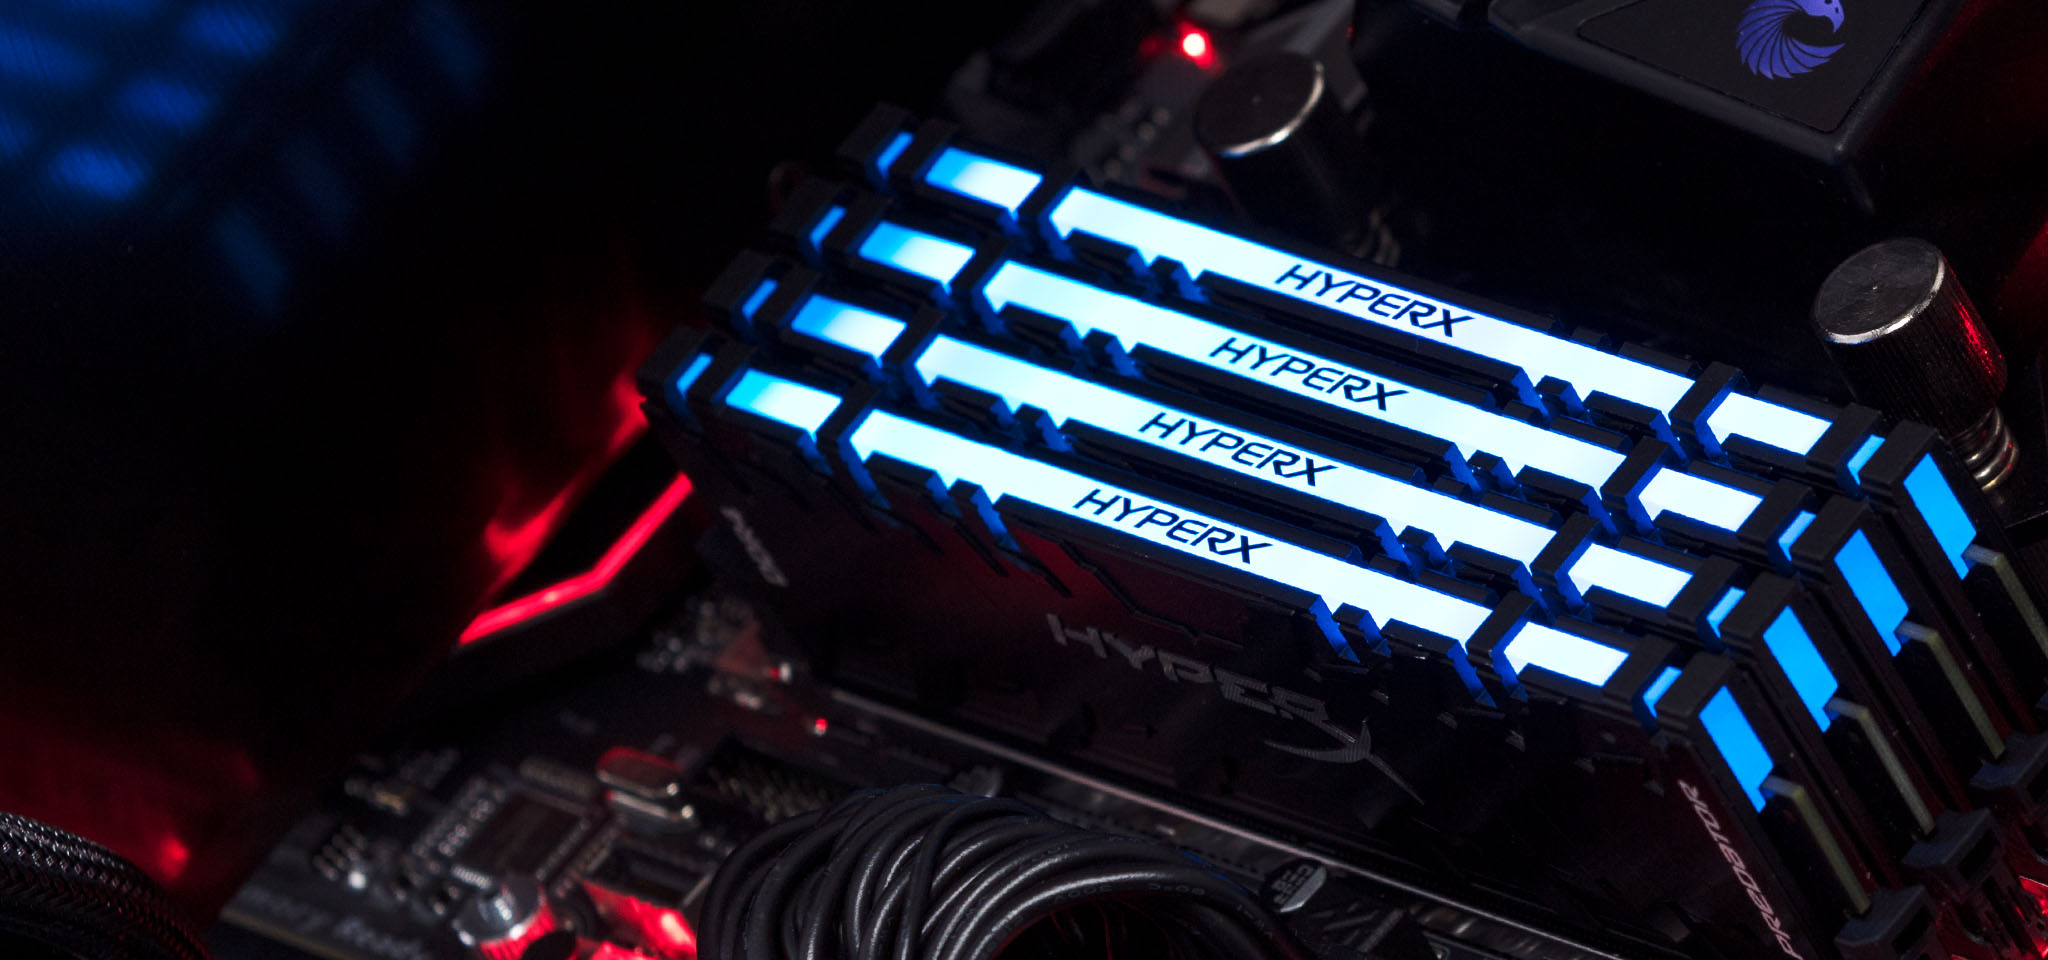 Close Up of HyperX Predator DDR4 RGB Blue LED installed in a PC